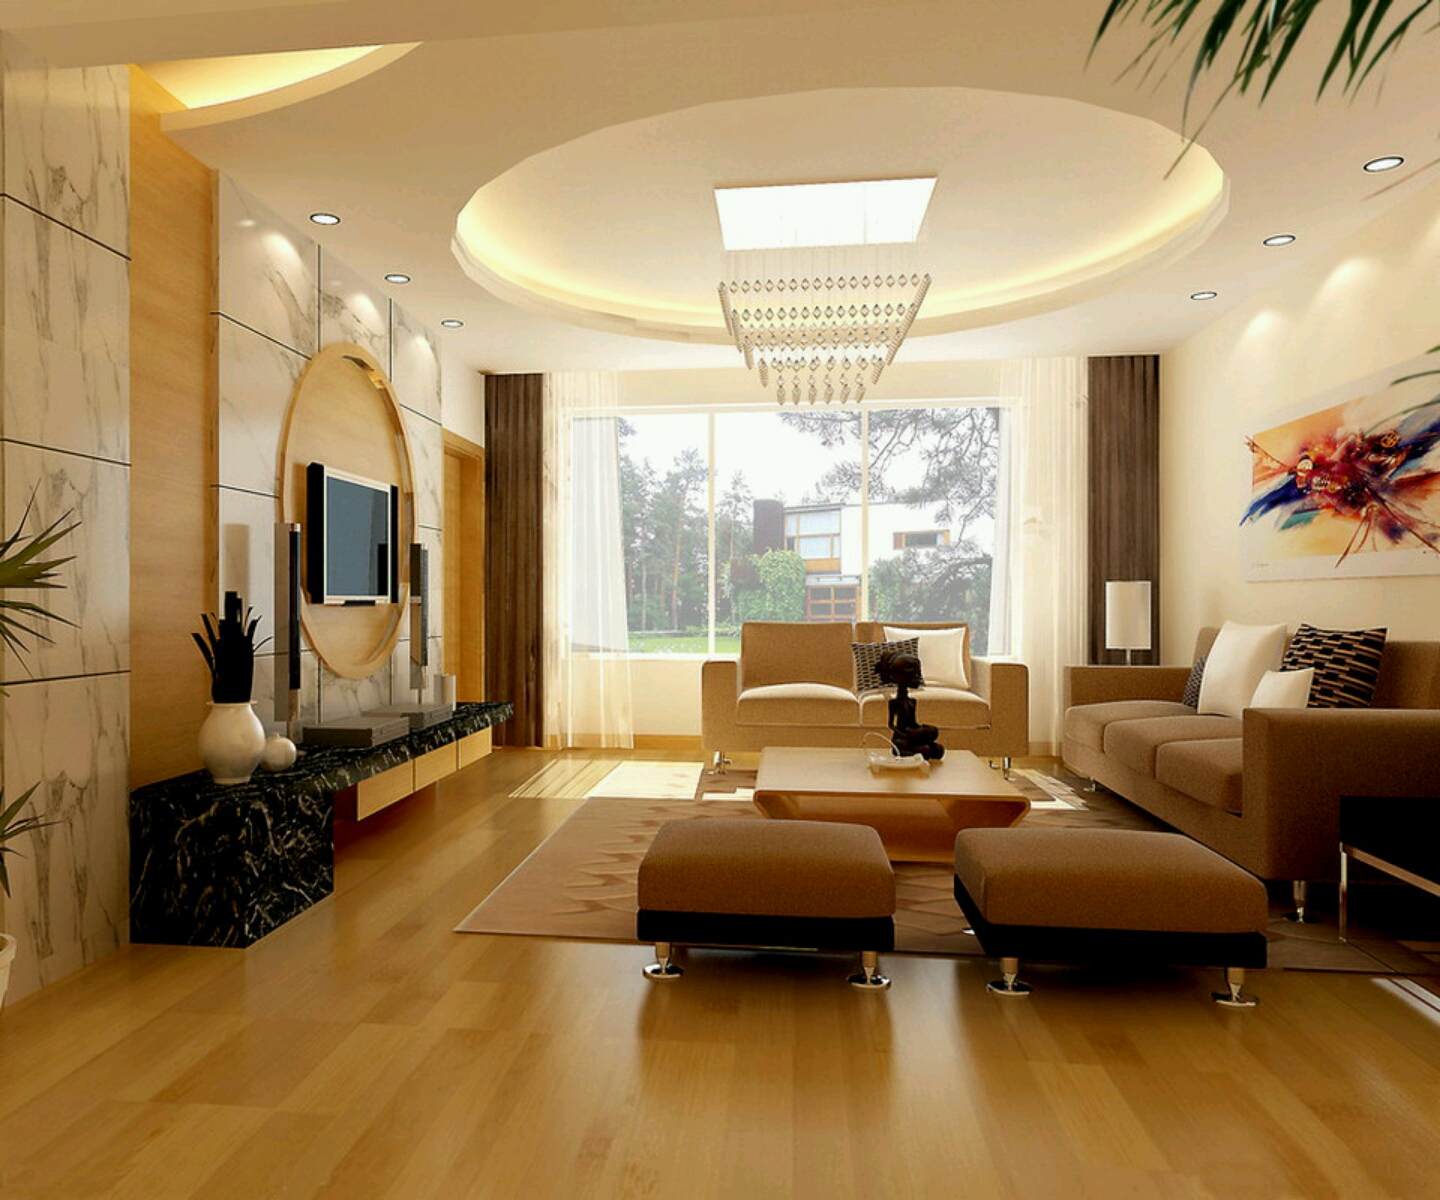 Modern interior decoration living rooms ceiling designs for Home ceiling design images